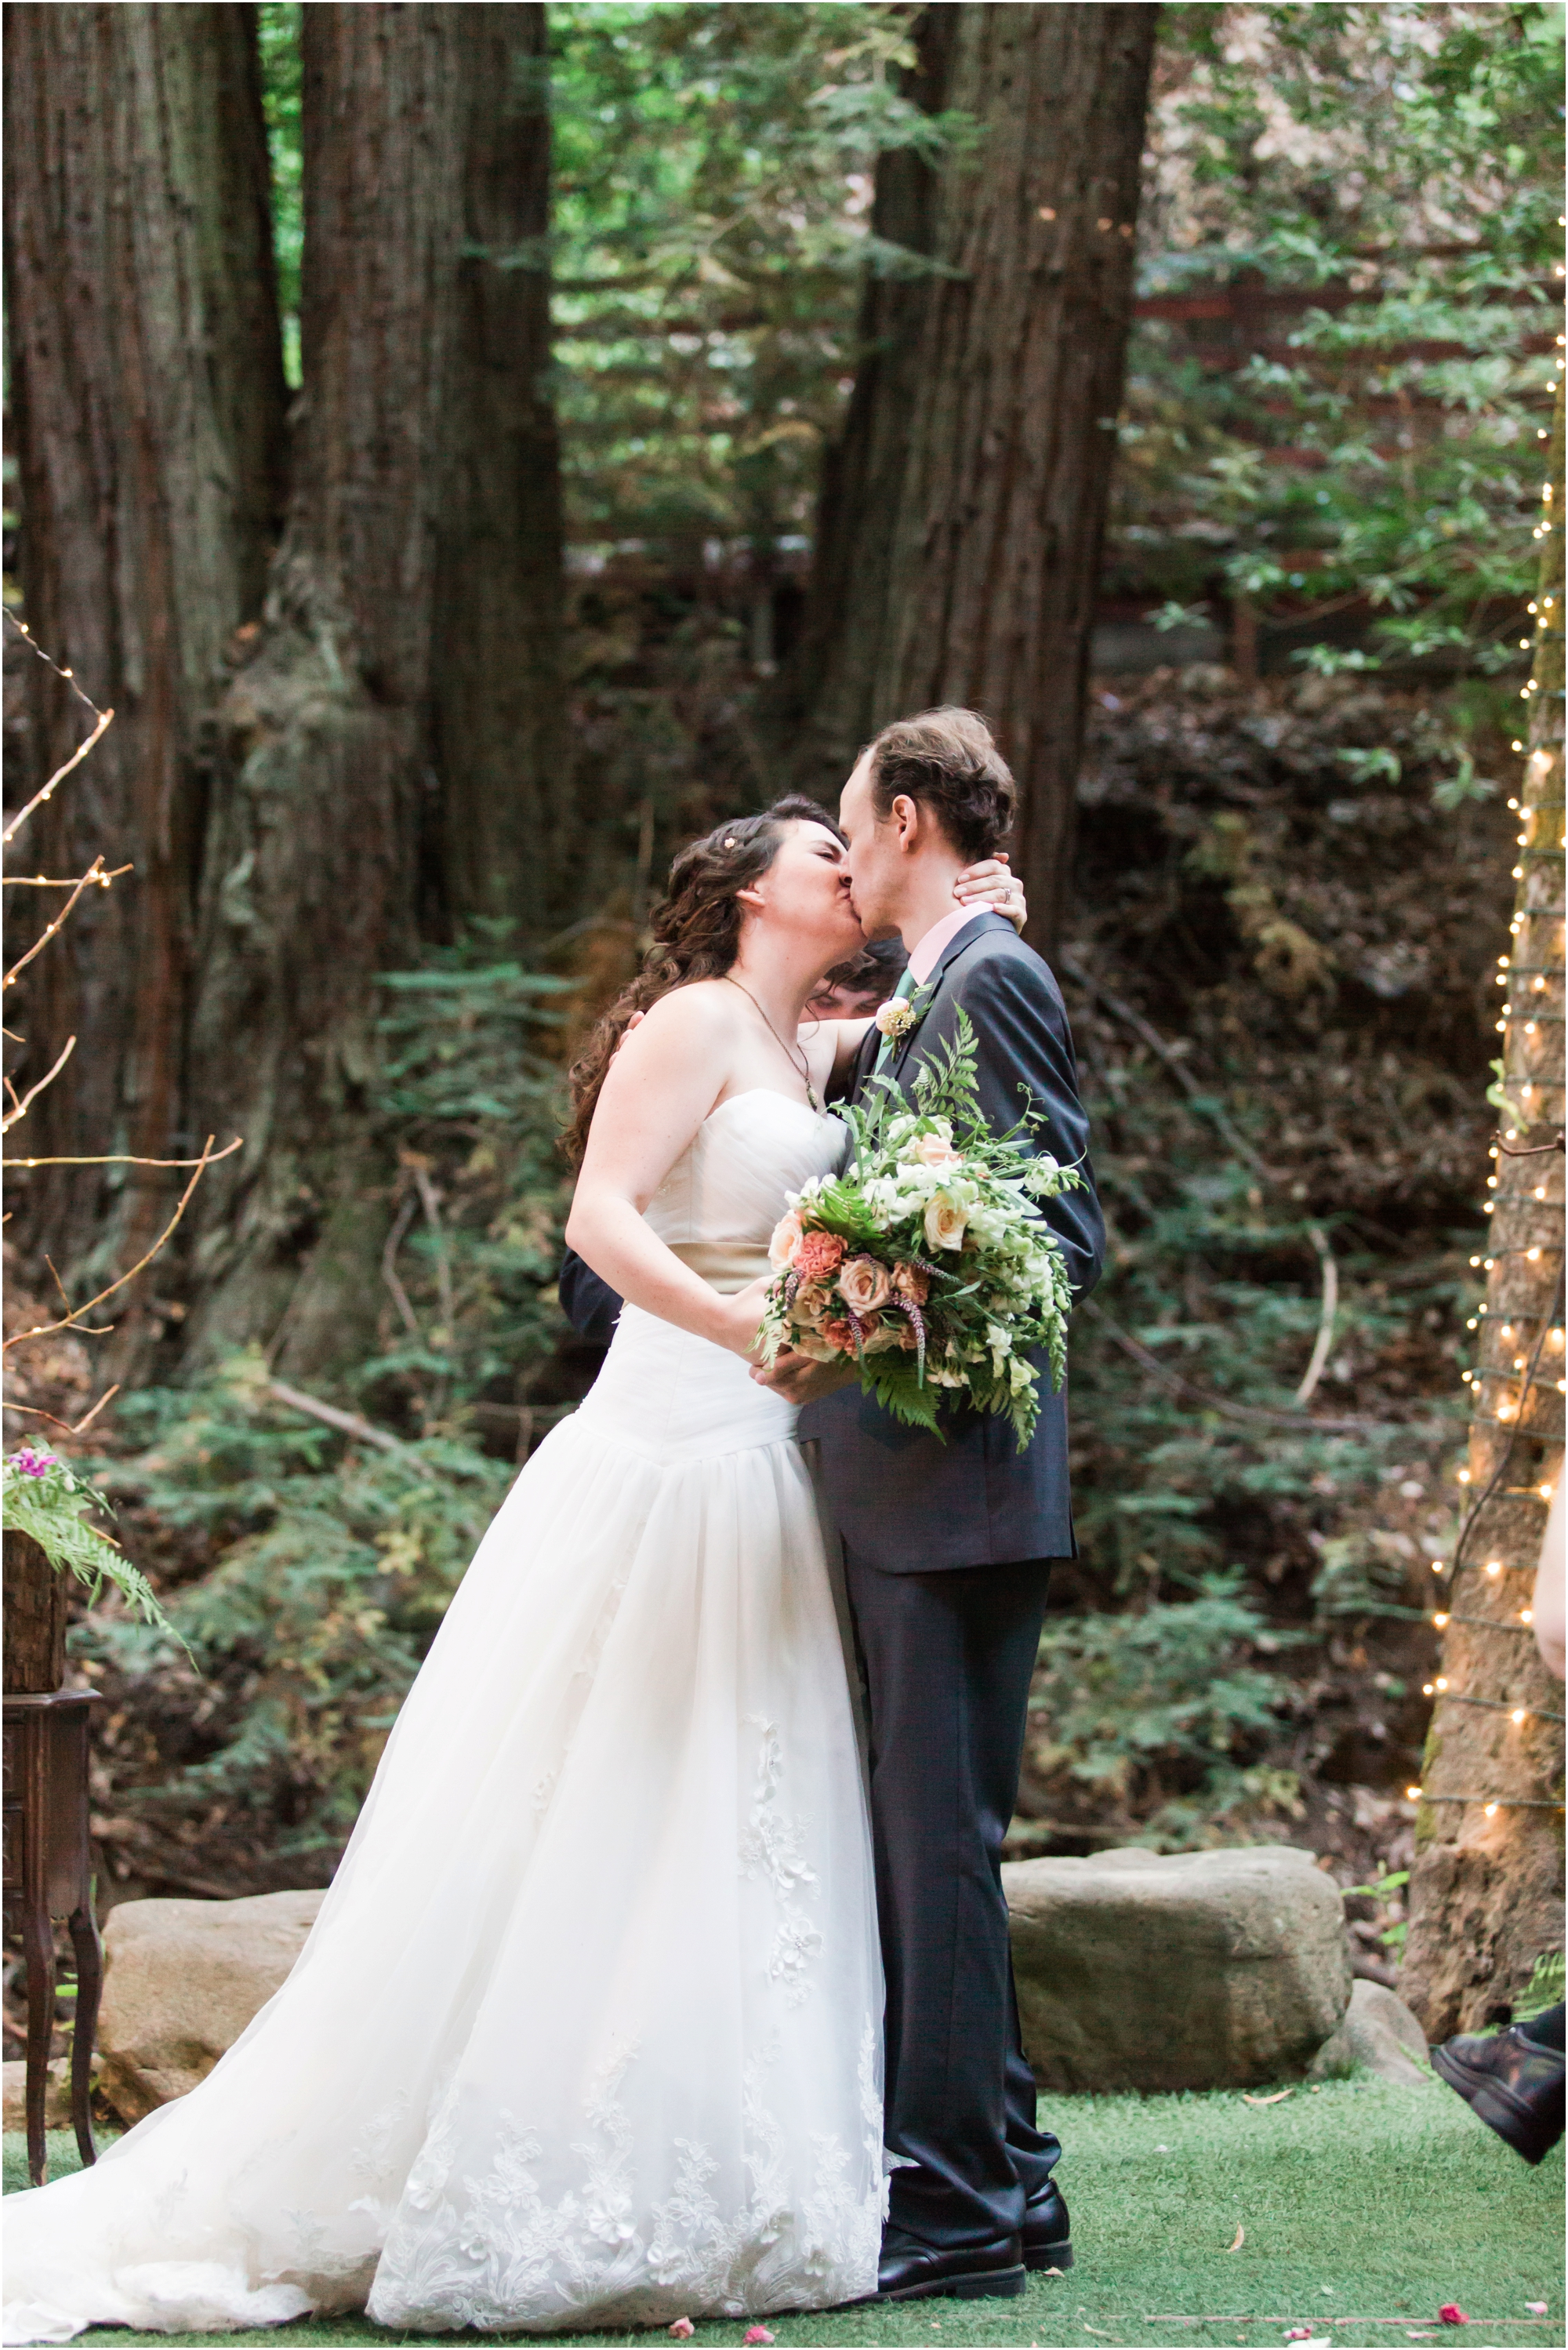 Saratoga Springs wedding pictures by Briana Calderon Photography_1891.jpg